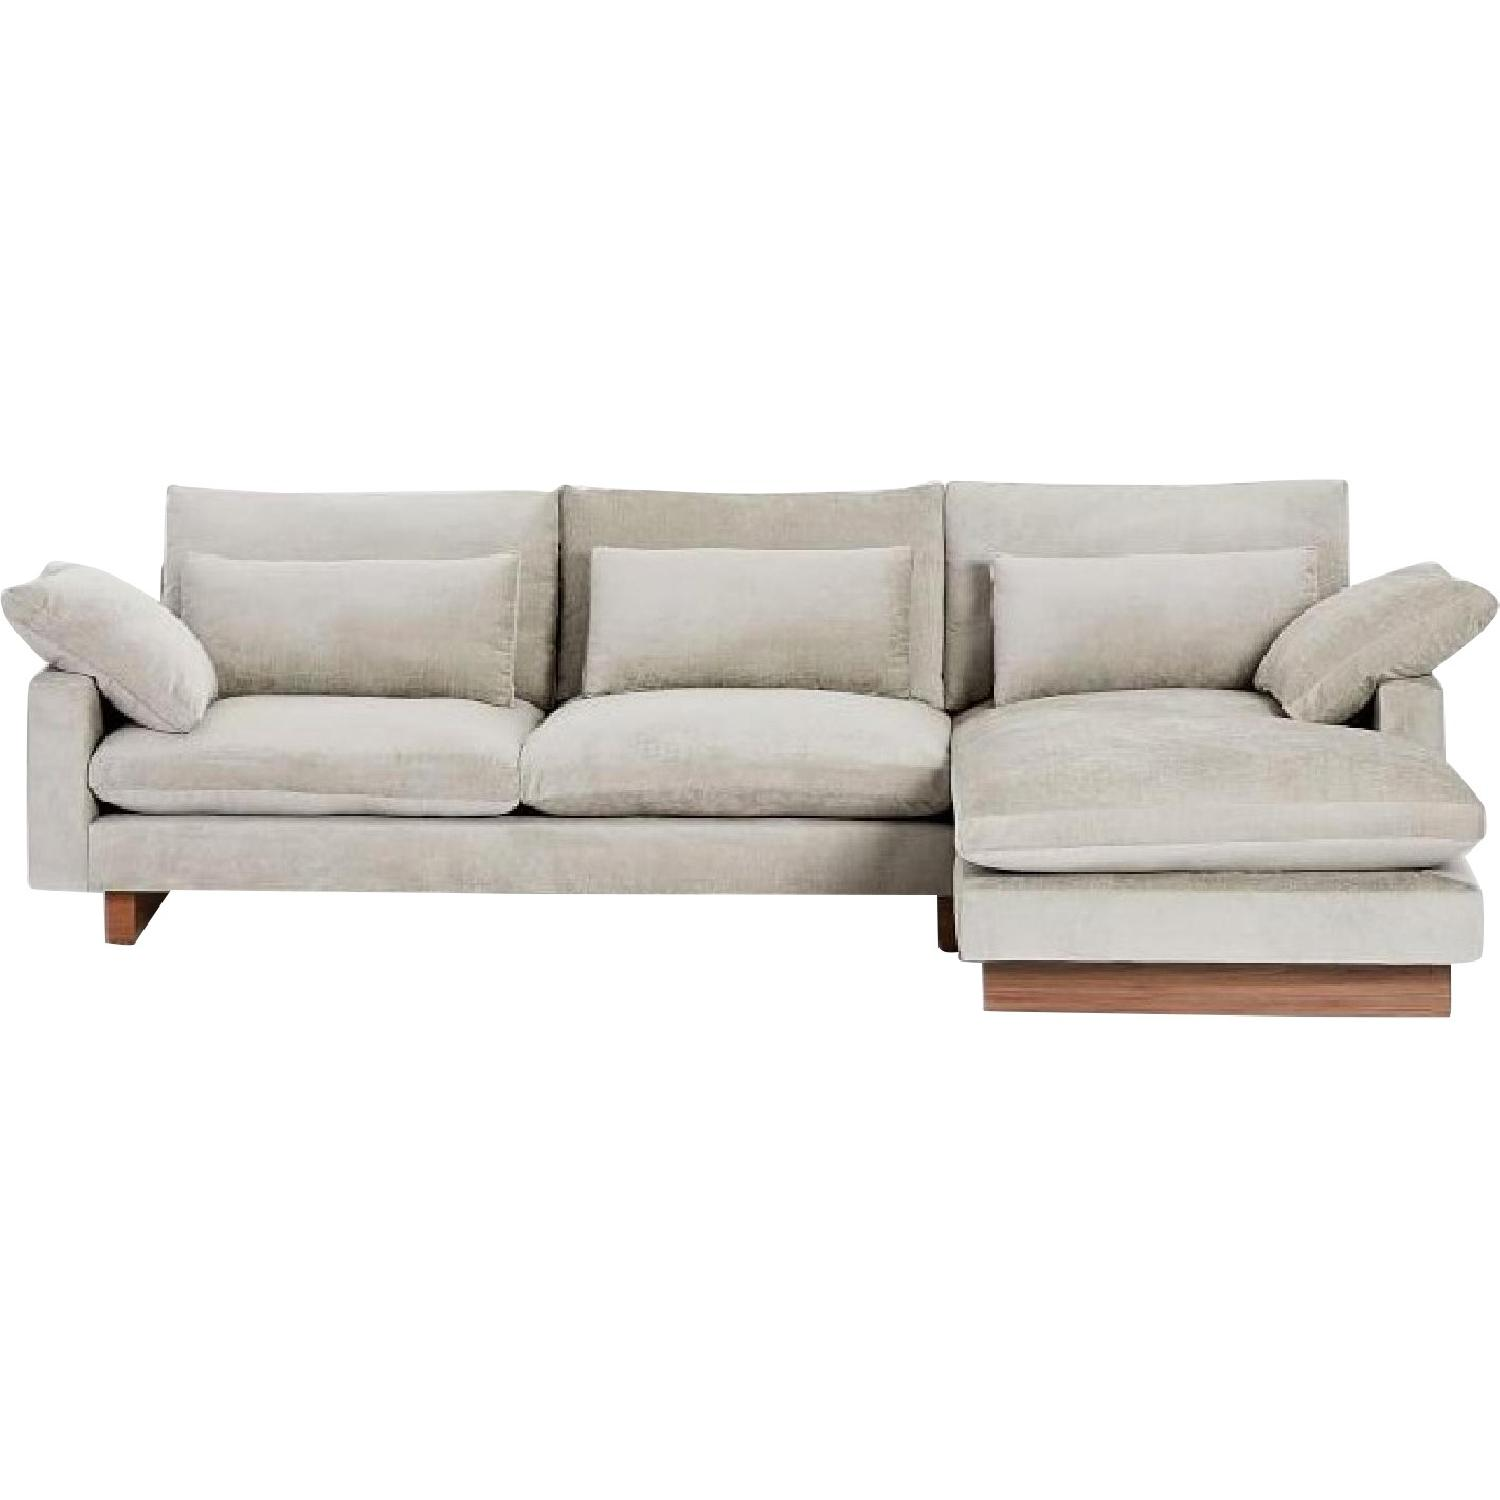 West Elm 2-Piece Large Chaise Sectional Sofa - image-0